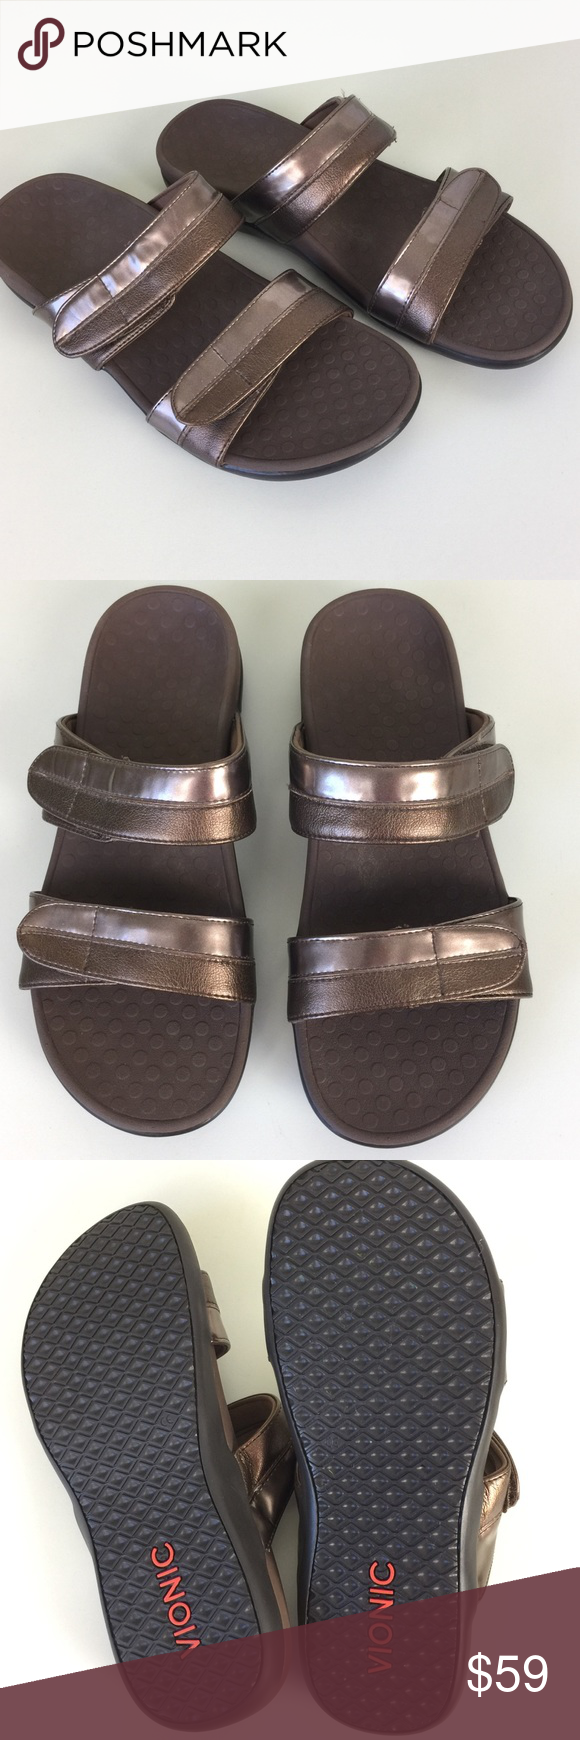 6f36ec7ae6ae Vionic NEW Orthaheel Shore Slide Sandals Bronze Size 8. New without box.  Tiny hole from the security tag. Adjustable hook and loop straps. Slip on  style.